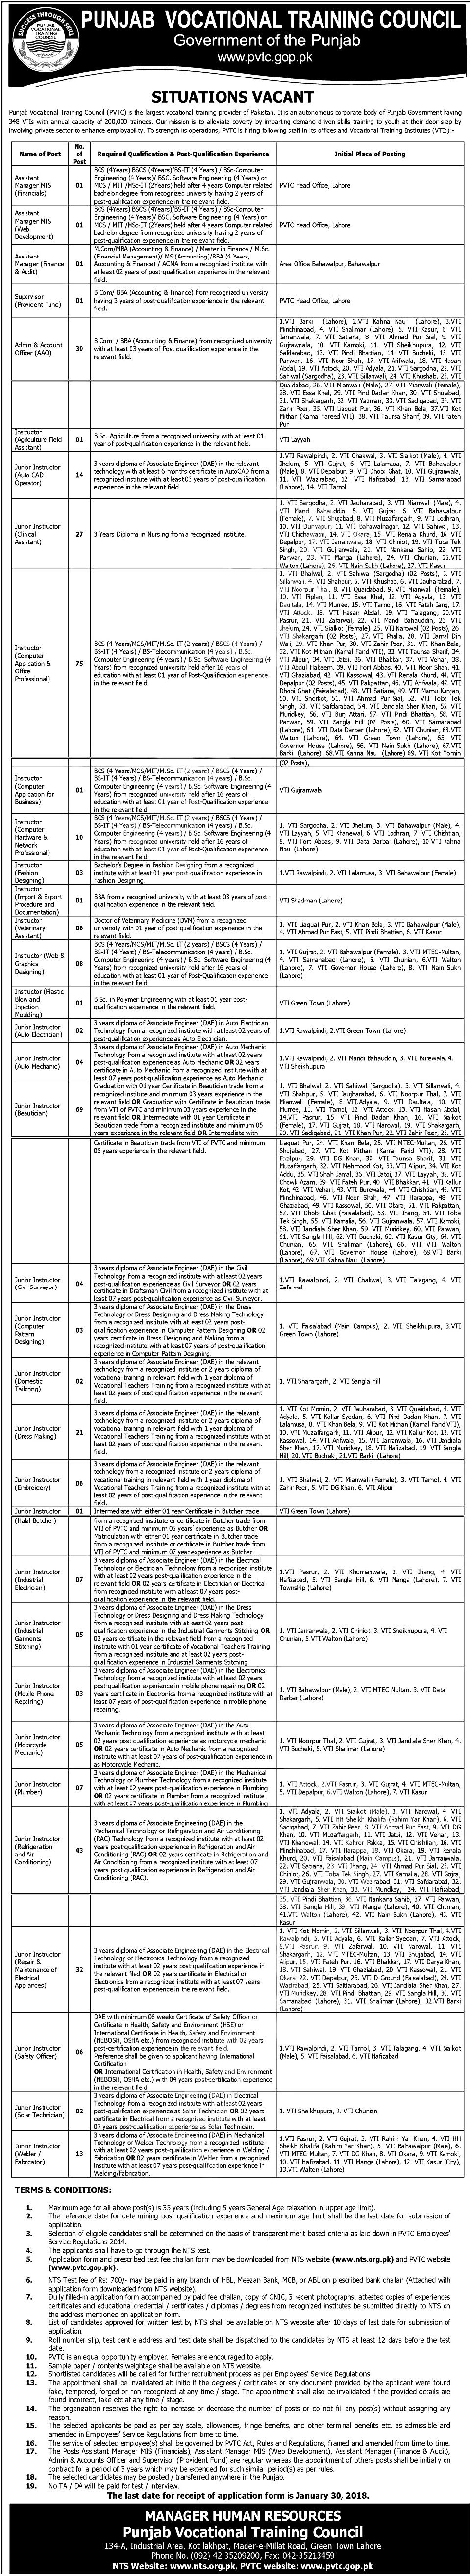 Punjab Vocational Training Council NTS Jobs Application Forms